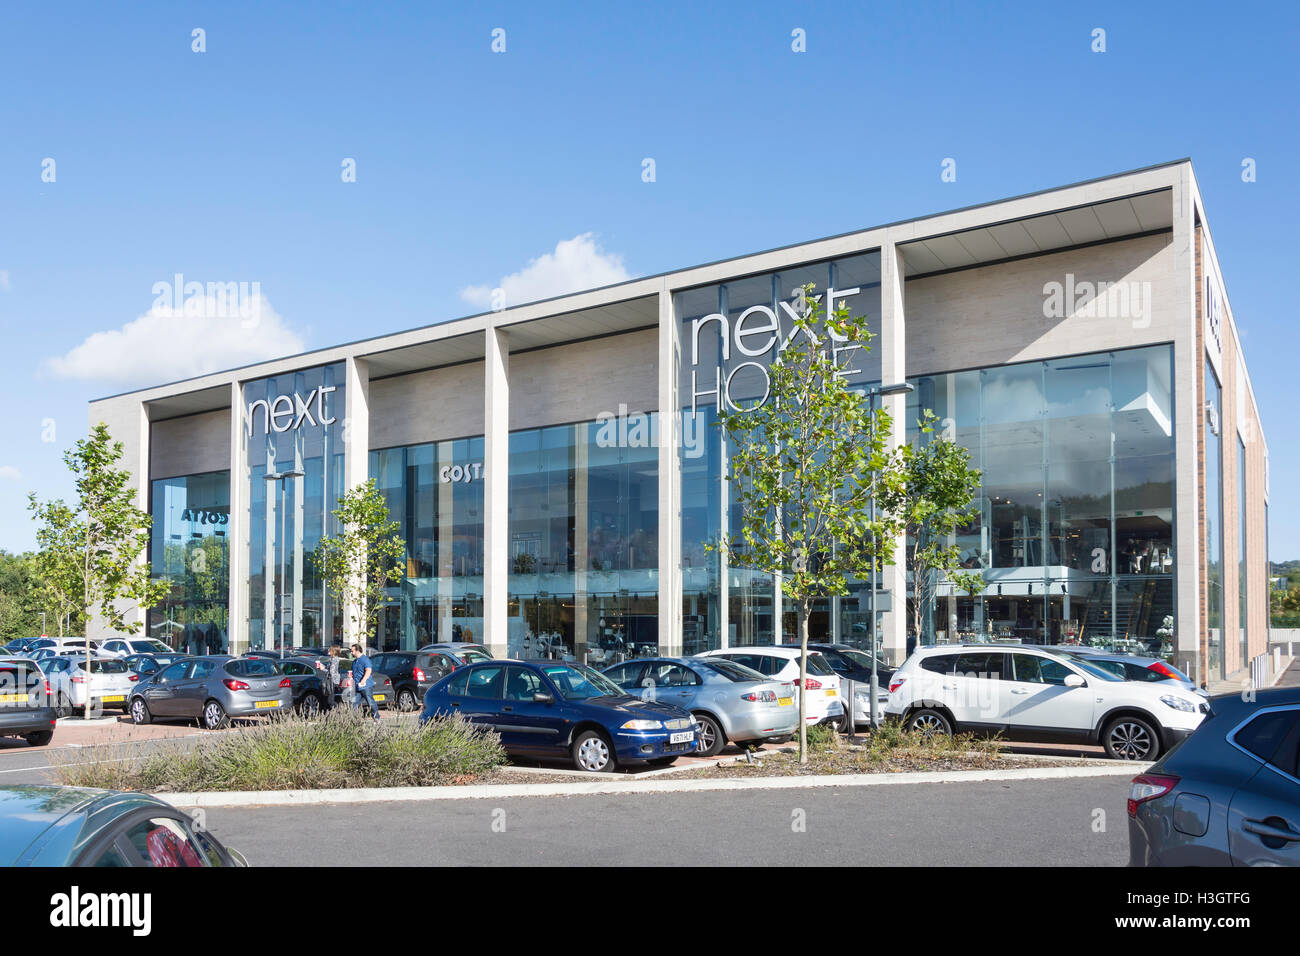 Next Fashion and Home store, Eclipse Park, Maidstone, Kent, England, United Kingdom - Stock Image